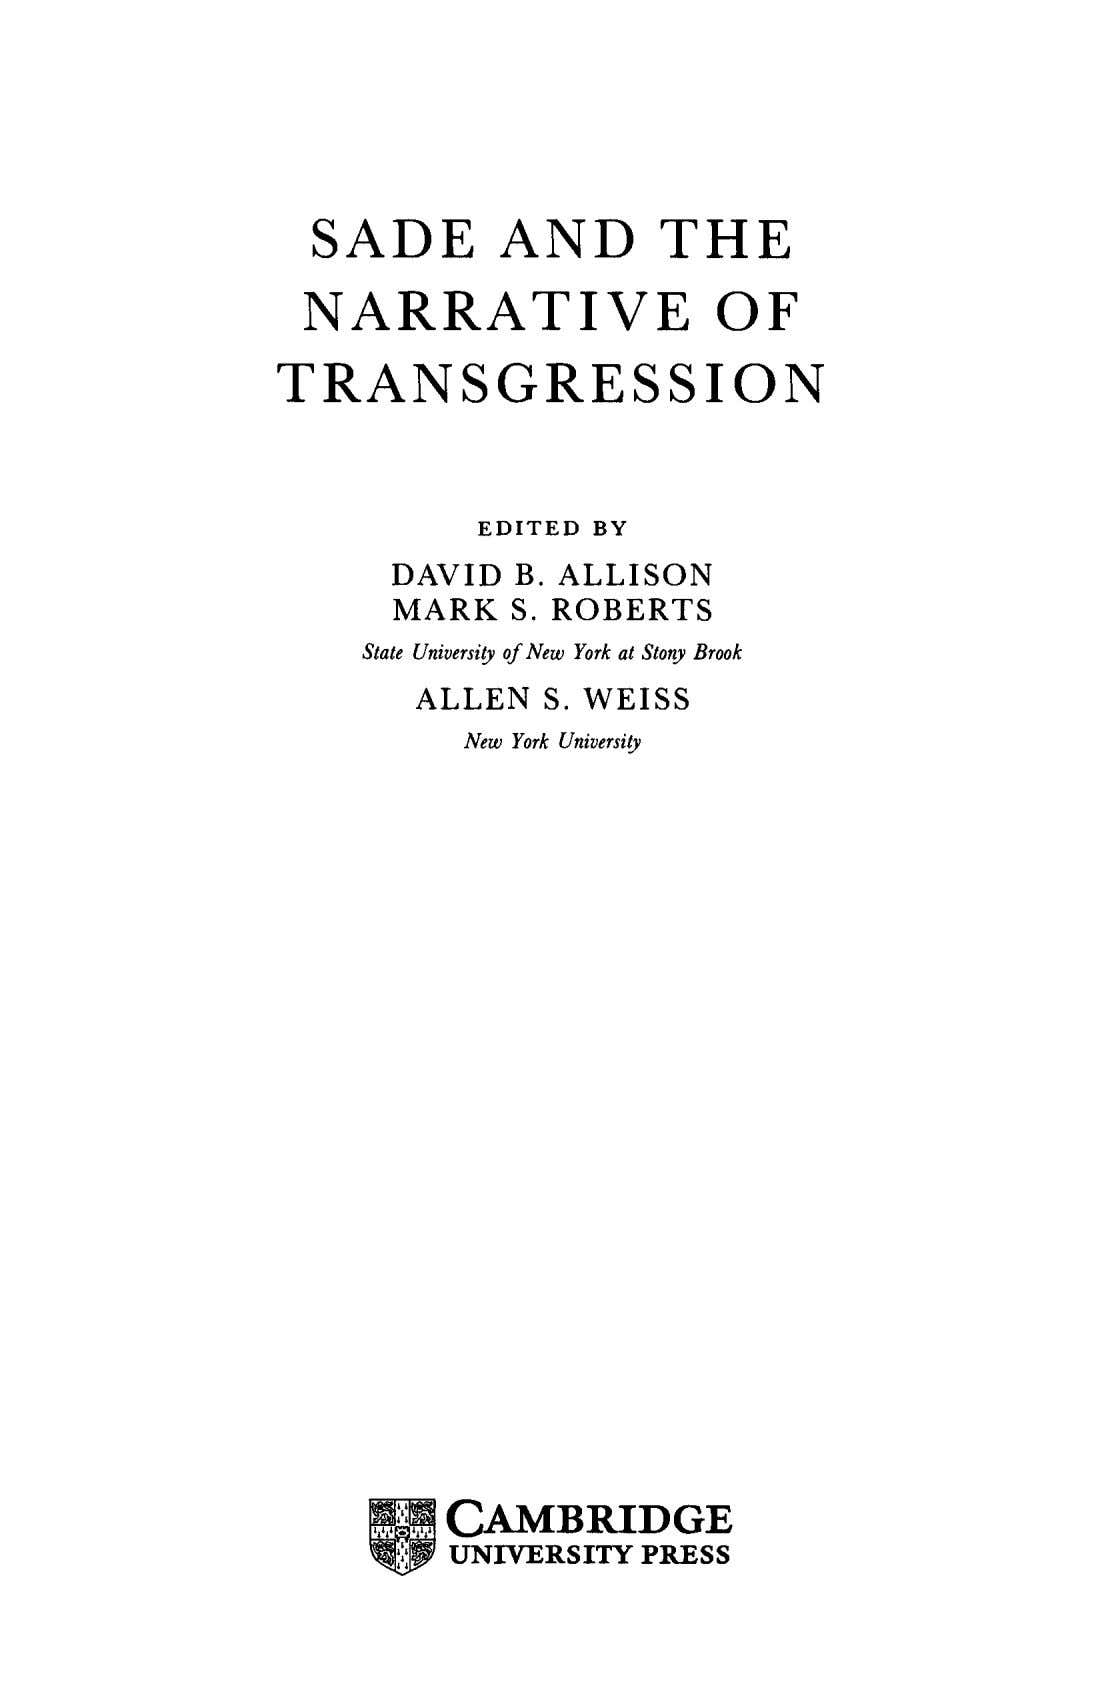 SADE AND THE NARRATIVE OF TRANSGRESSION EDITED BY DAVID B. ALLISON MARK S. ROBERTS State